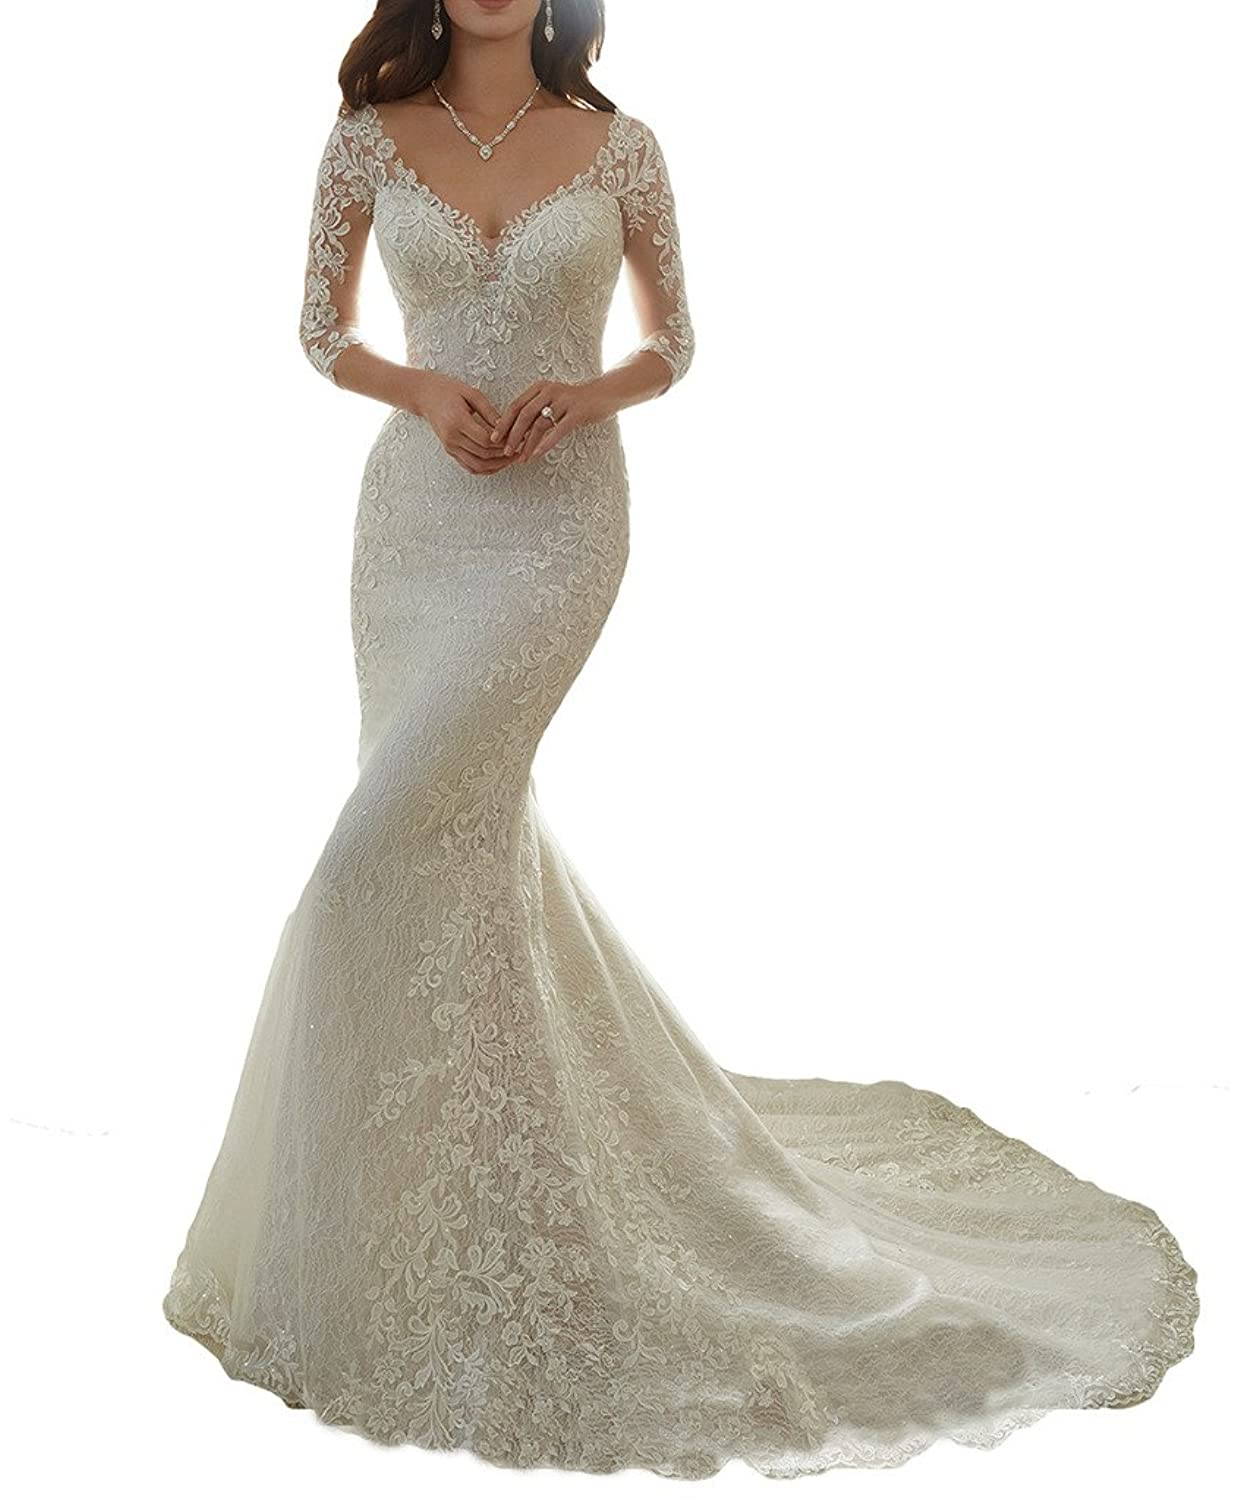 Attractive Cardol Flower Appliques Mermaid Half Sleeves Lace Wedding Dresses Bridal  Wedding Gowns At Amazon Womenu0027s Clothing Store: